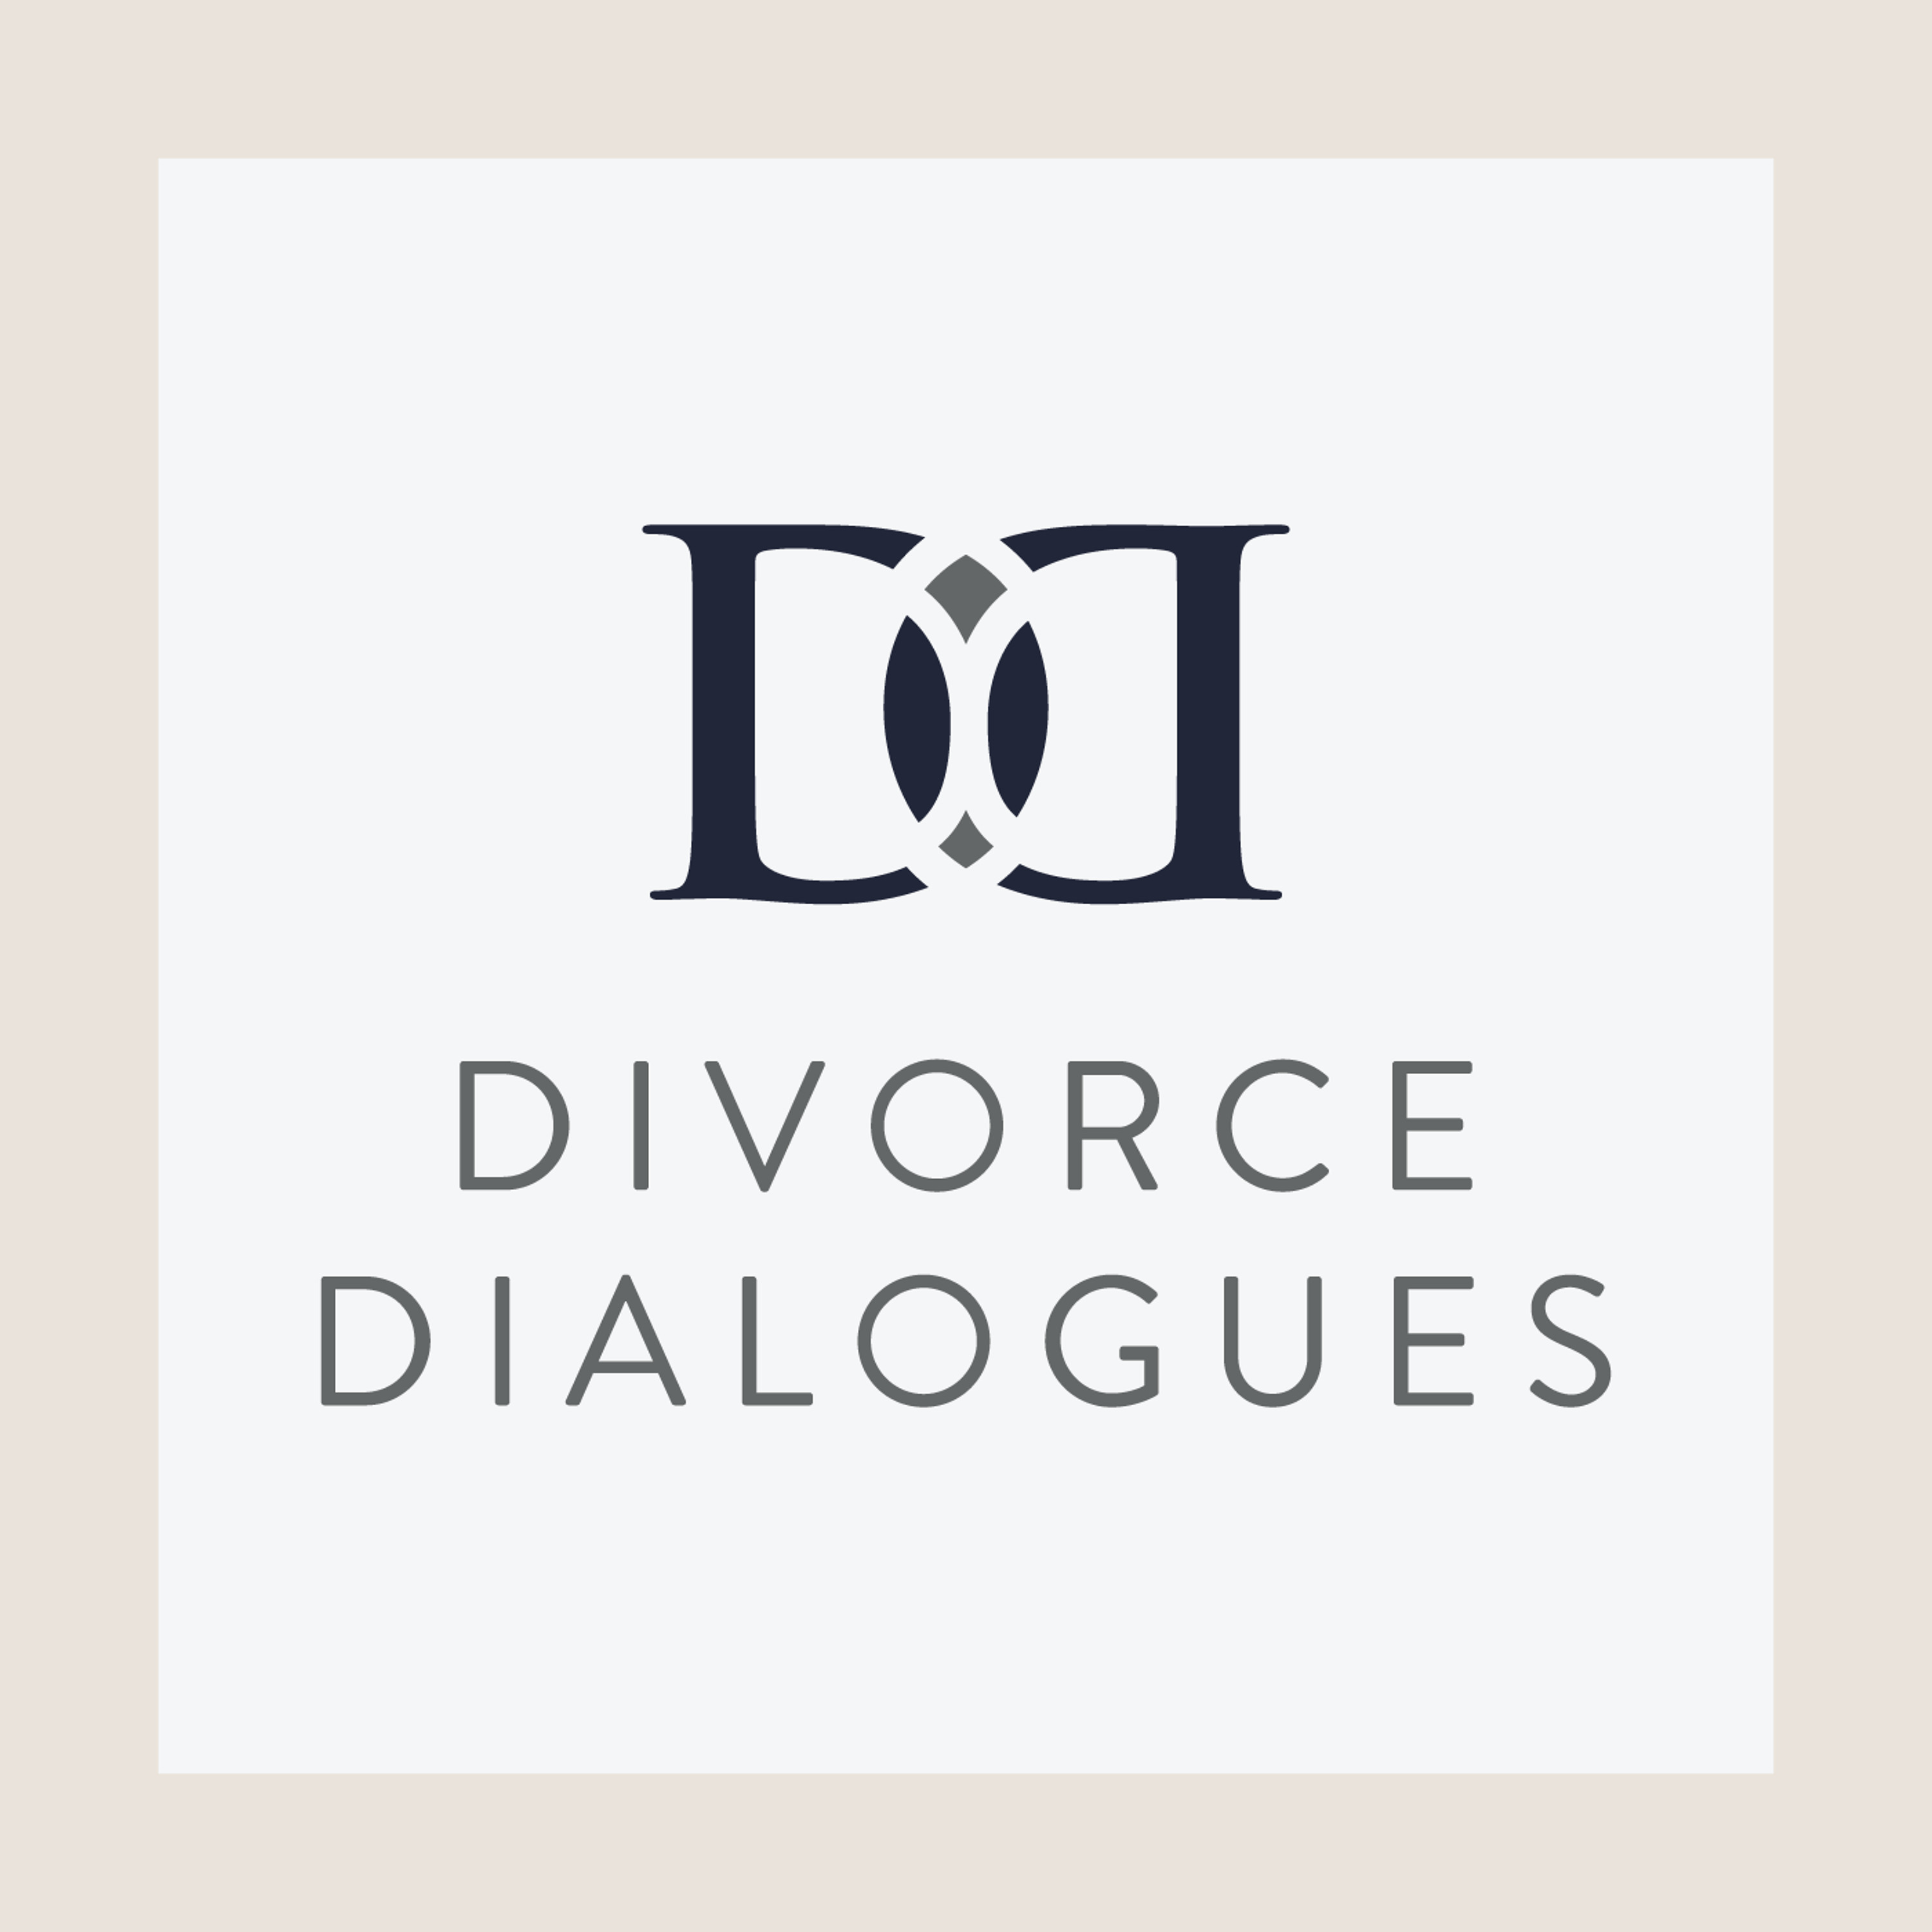 Divorce Dialogues - Reconnecting with Yourself After Divorce with Sara Woodard